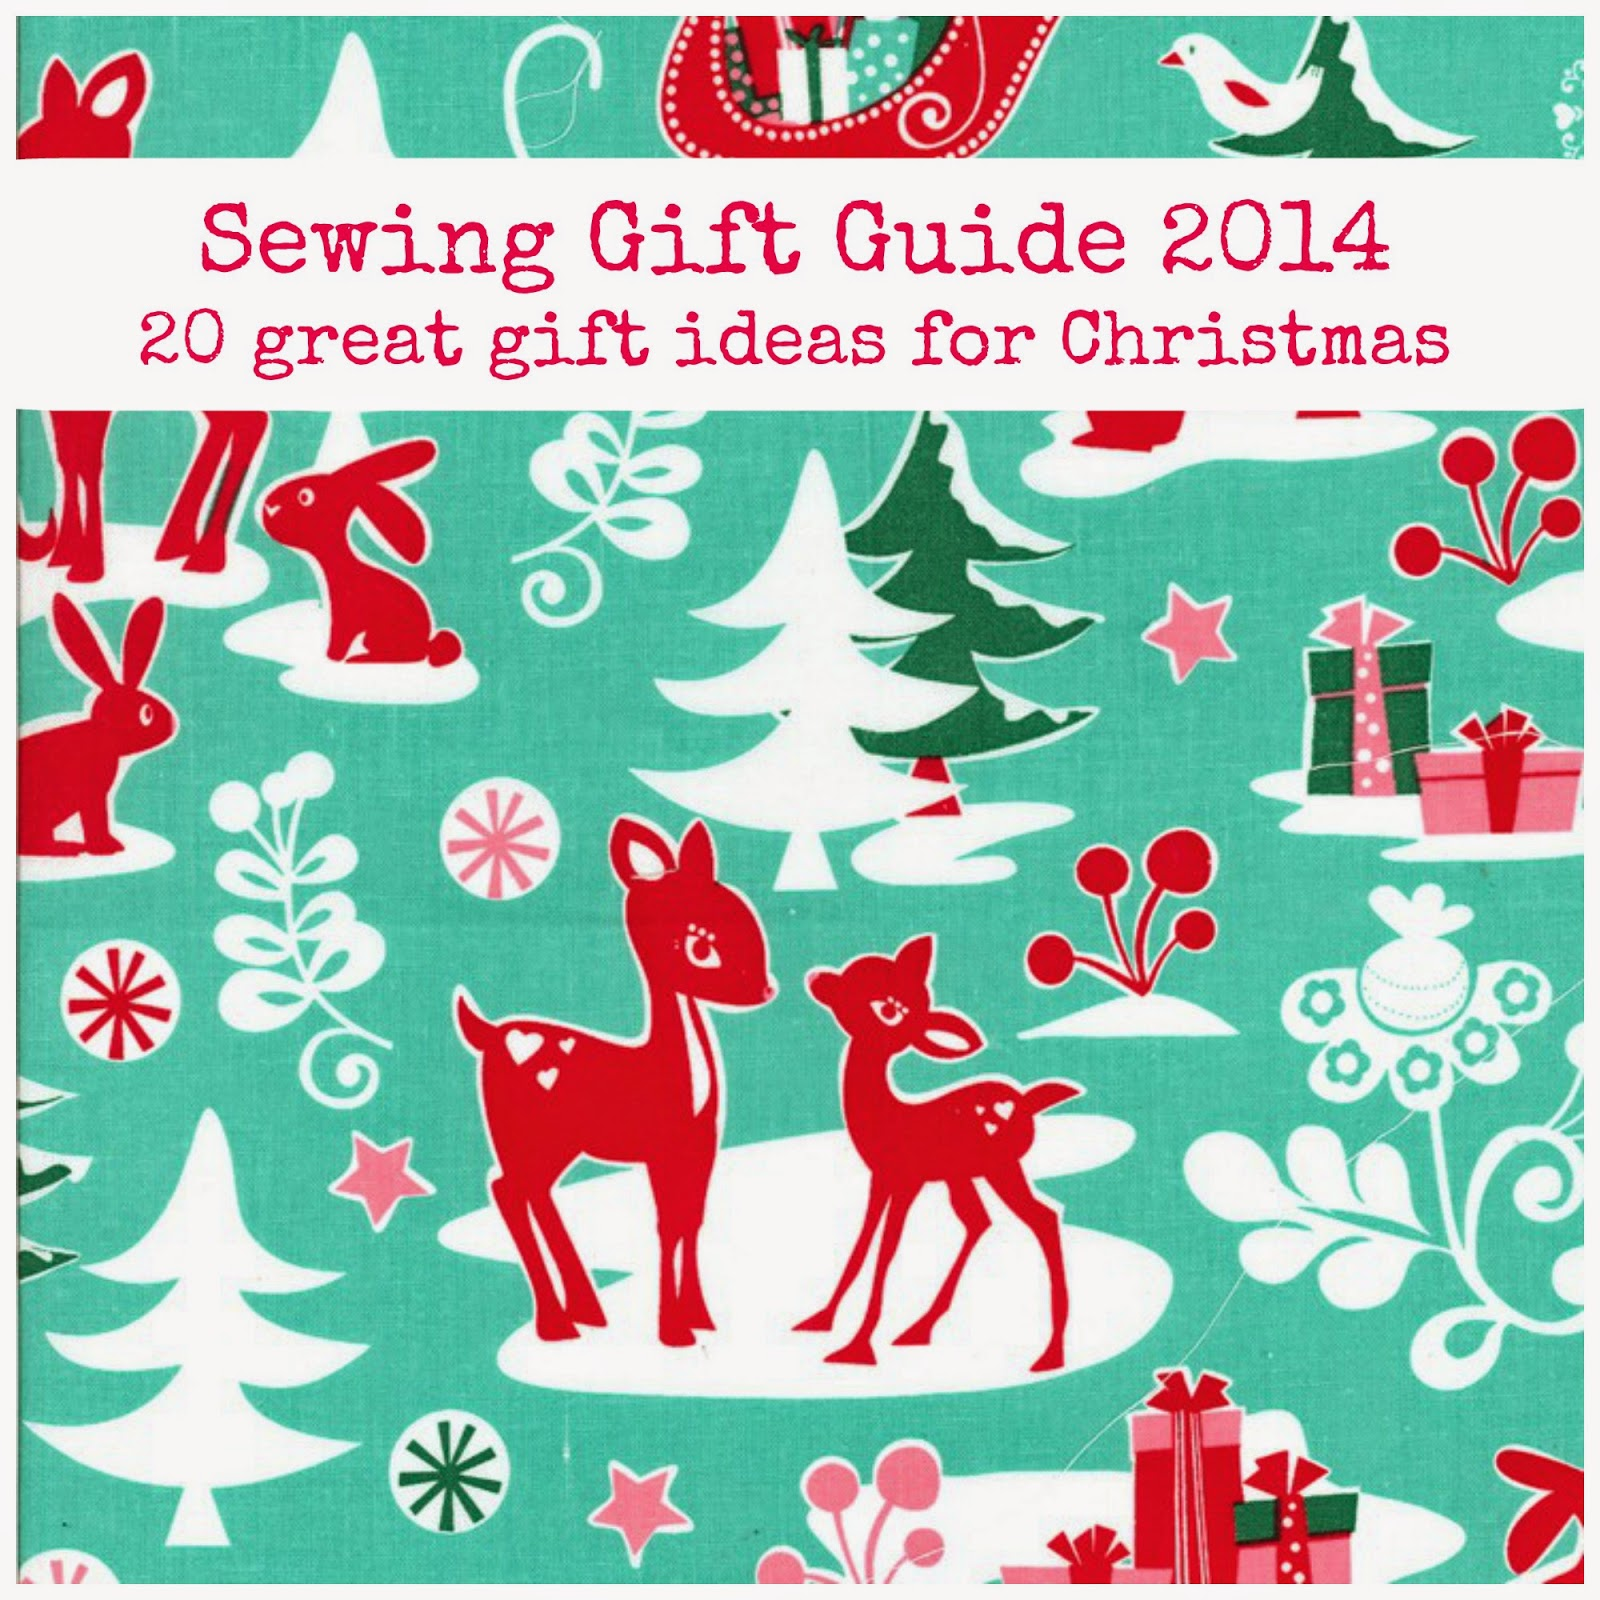 Sew Scrumptious: Christmas Sewing Gifts for 2014